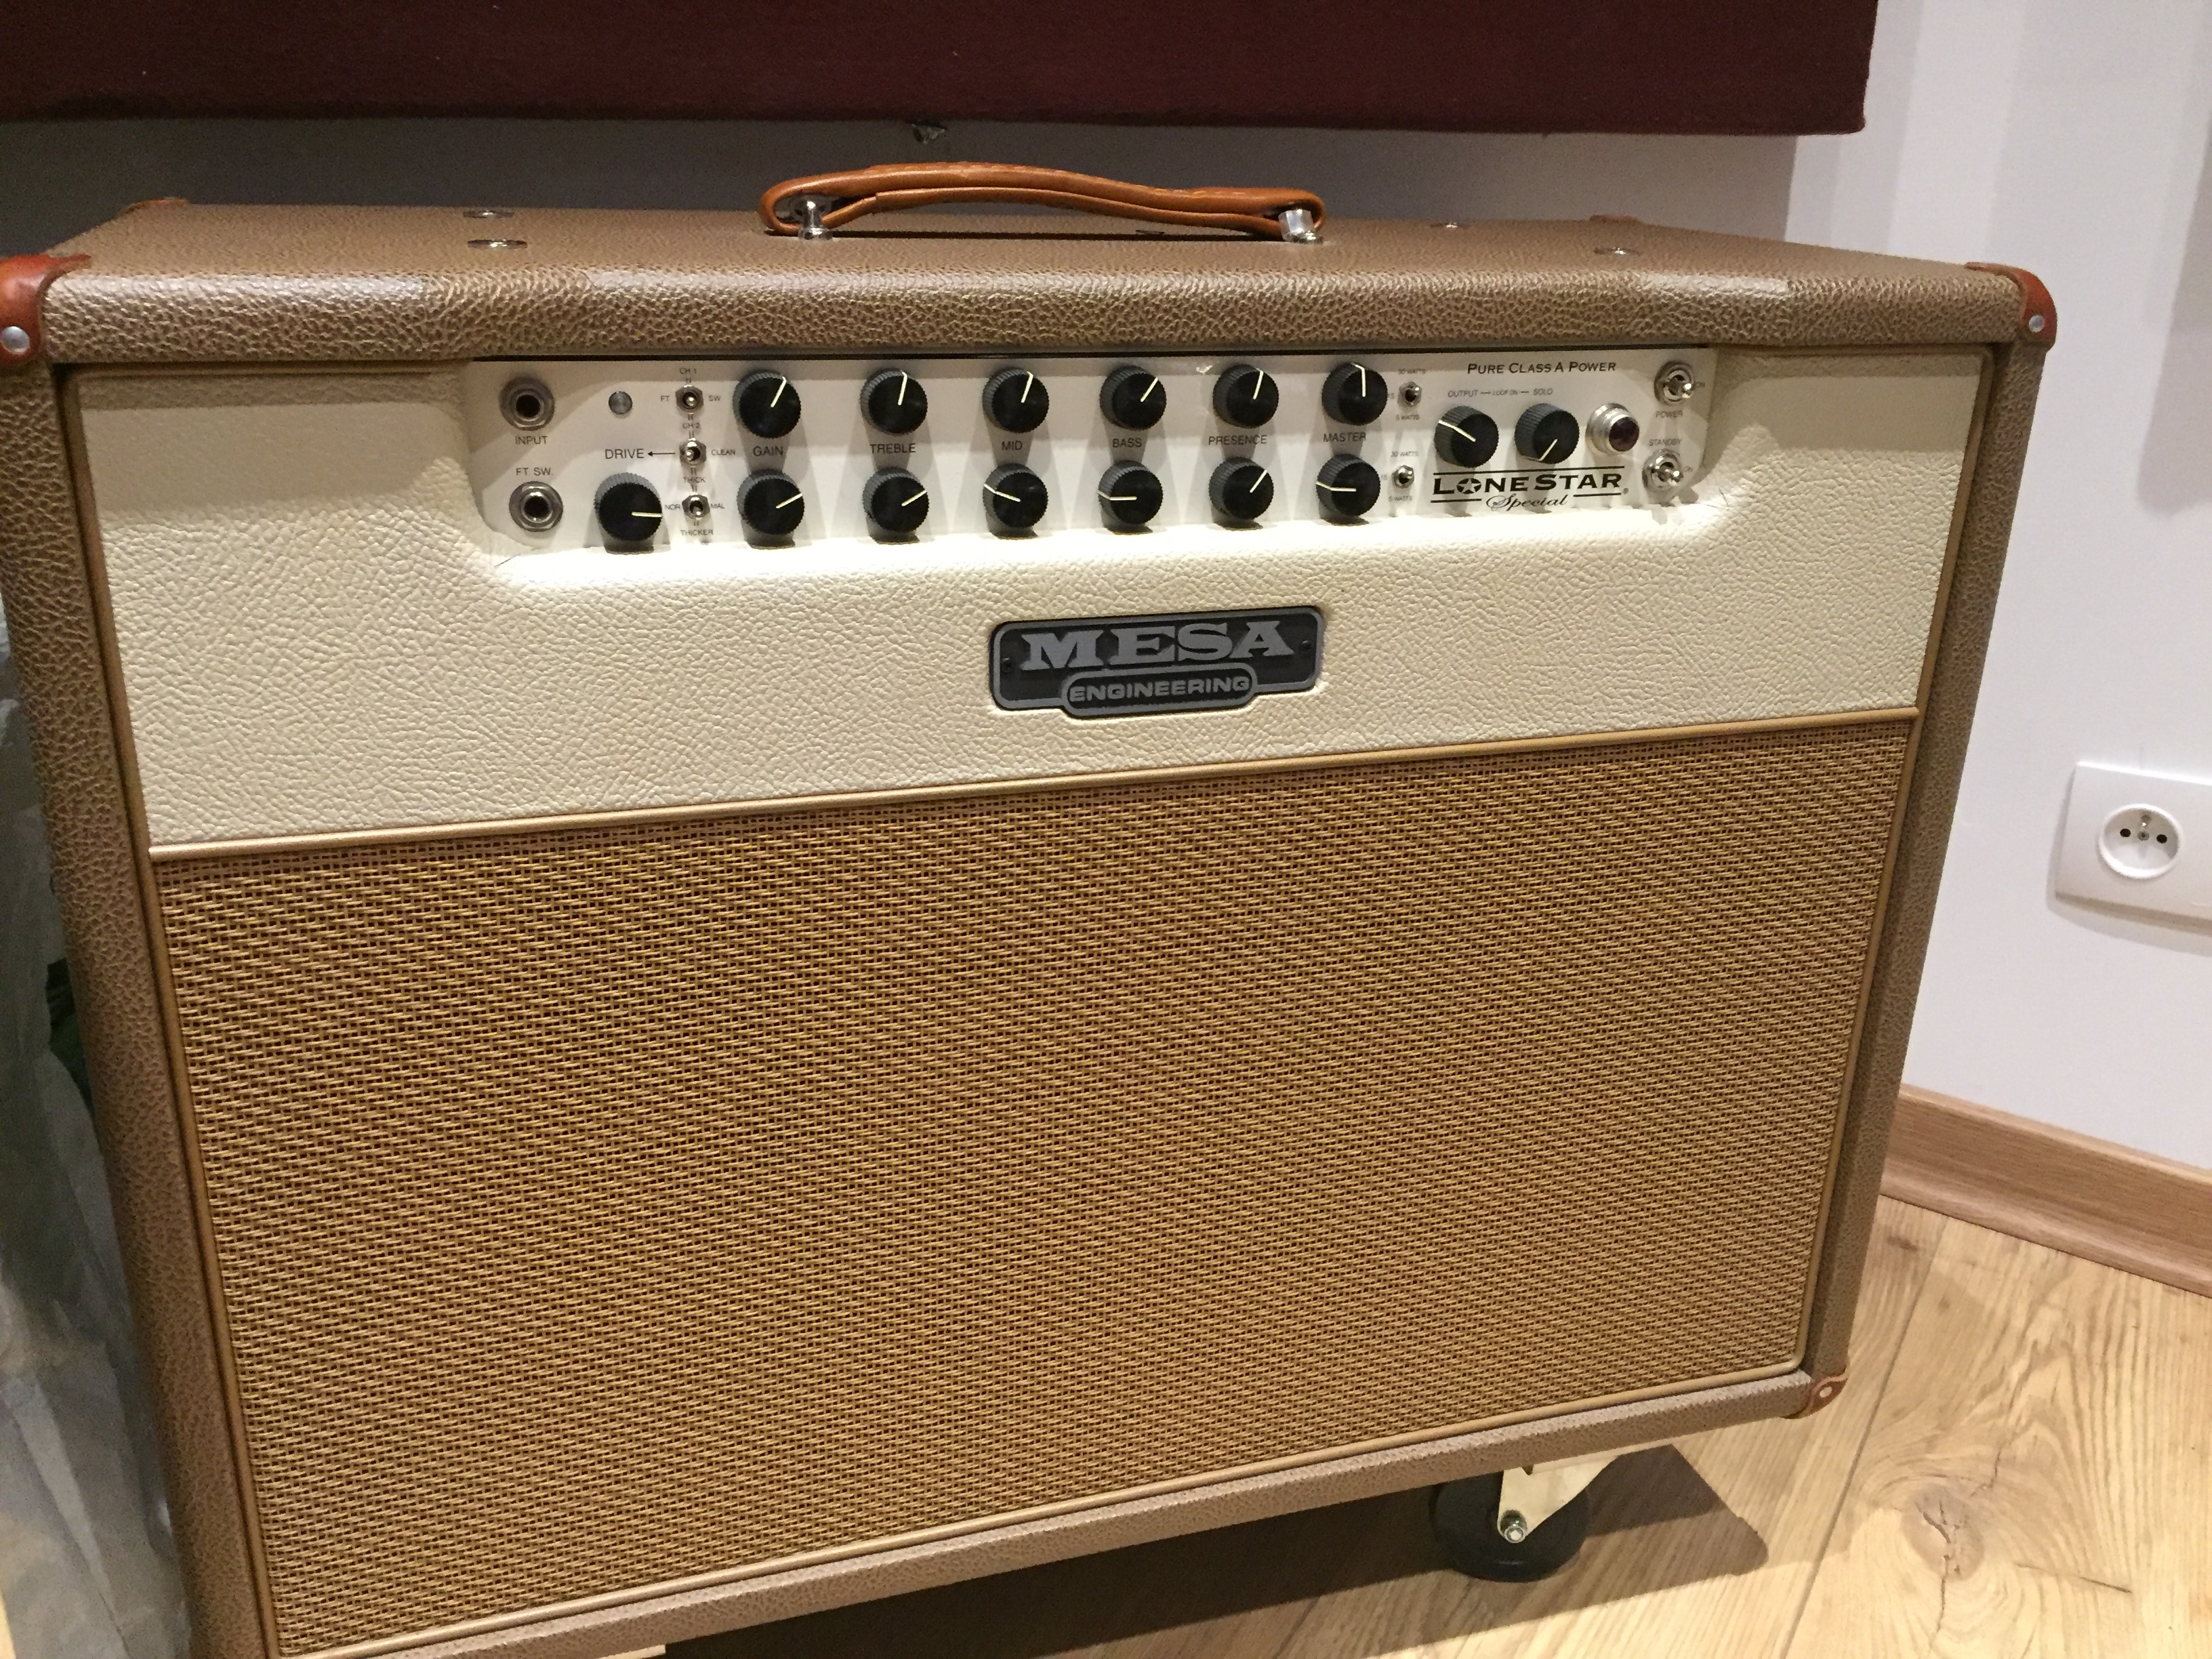 Mesa boogie lone star special 2x12 combo image 1597691 for Mesa boogie lonestar 2x12